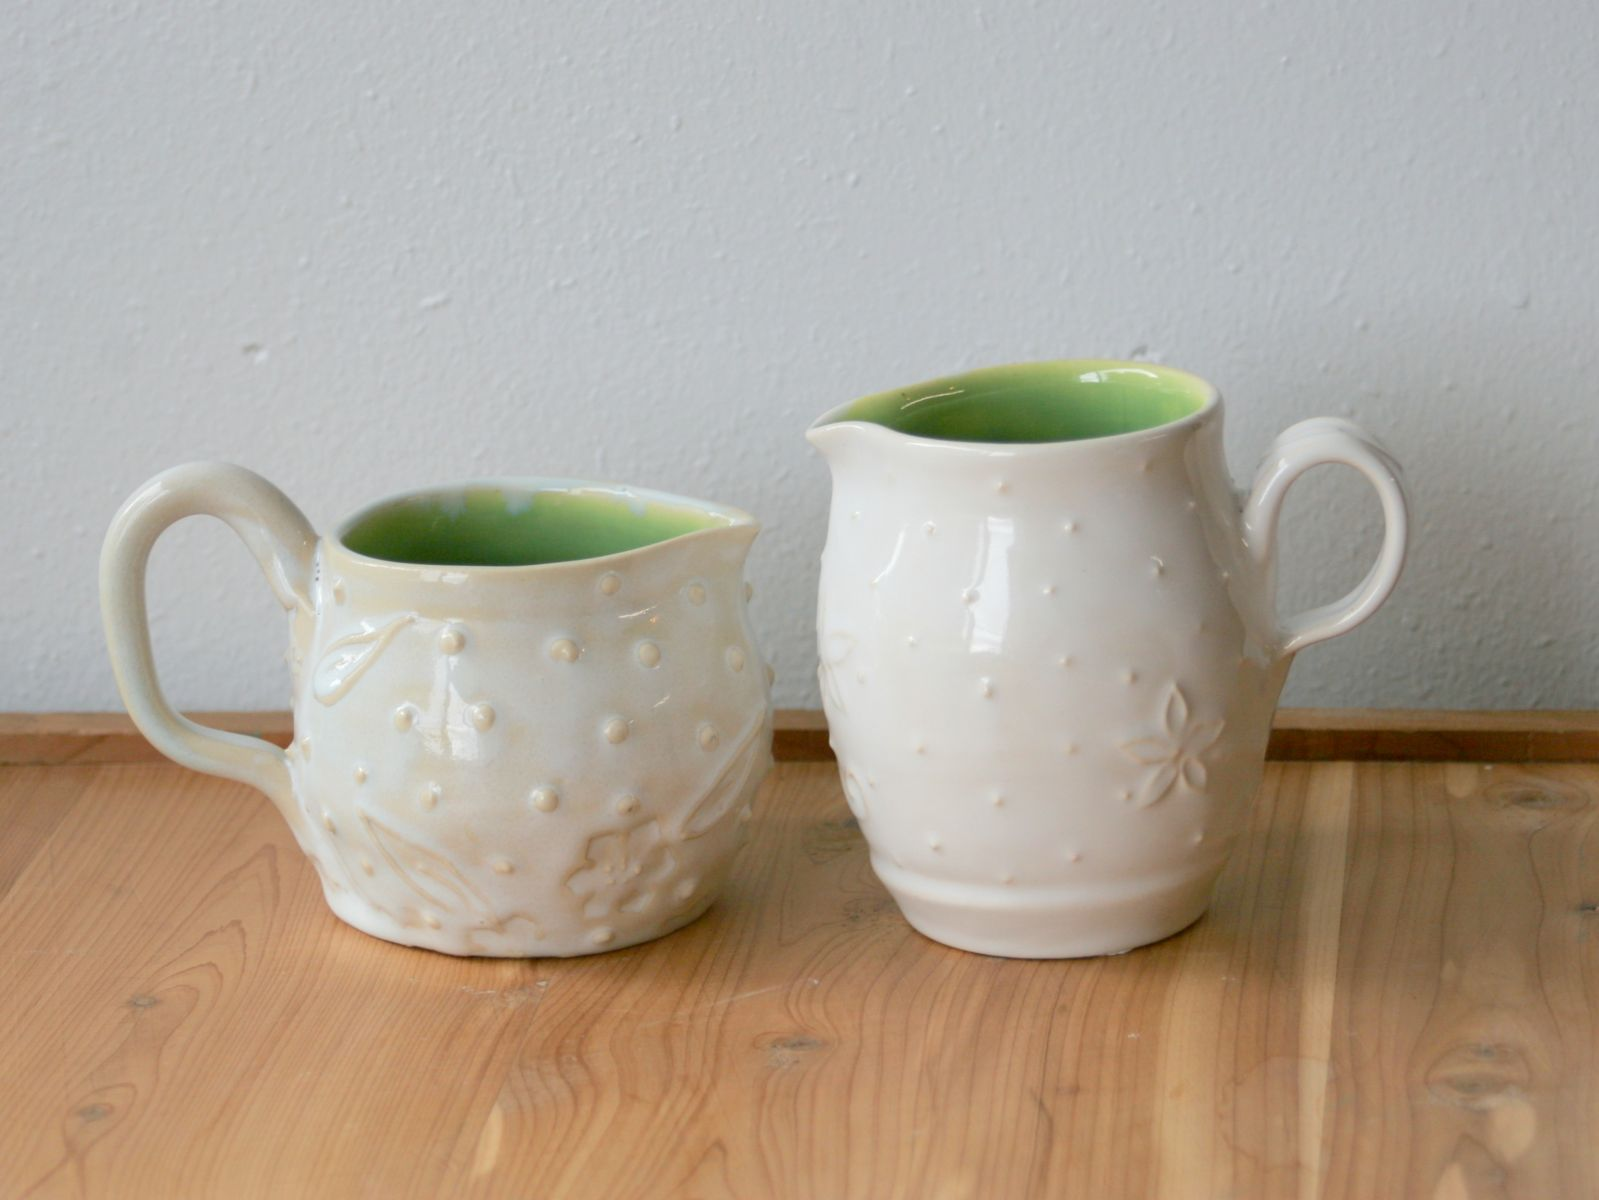 Cream Pitchers, Side By Side Comparison, Six Months' Progress